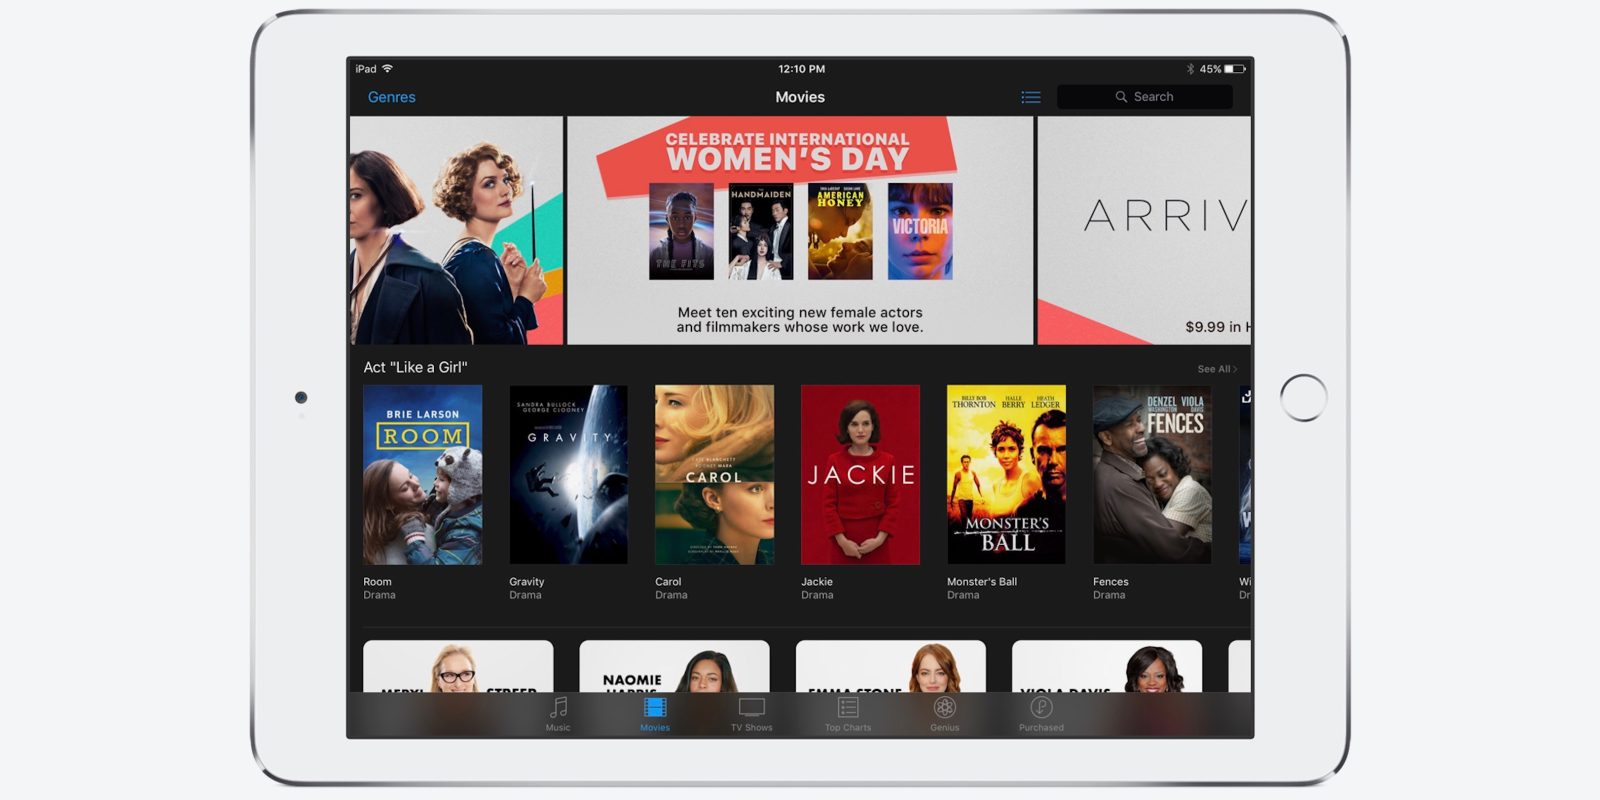 Apple sees iTunes market share slip as competition increases from Amazon & Comcast for films